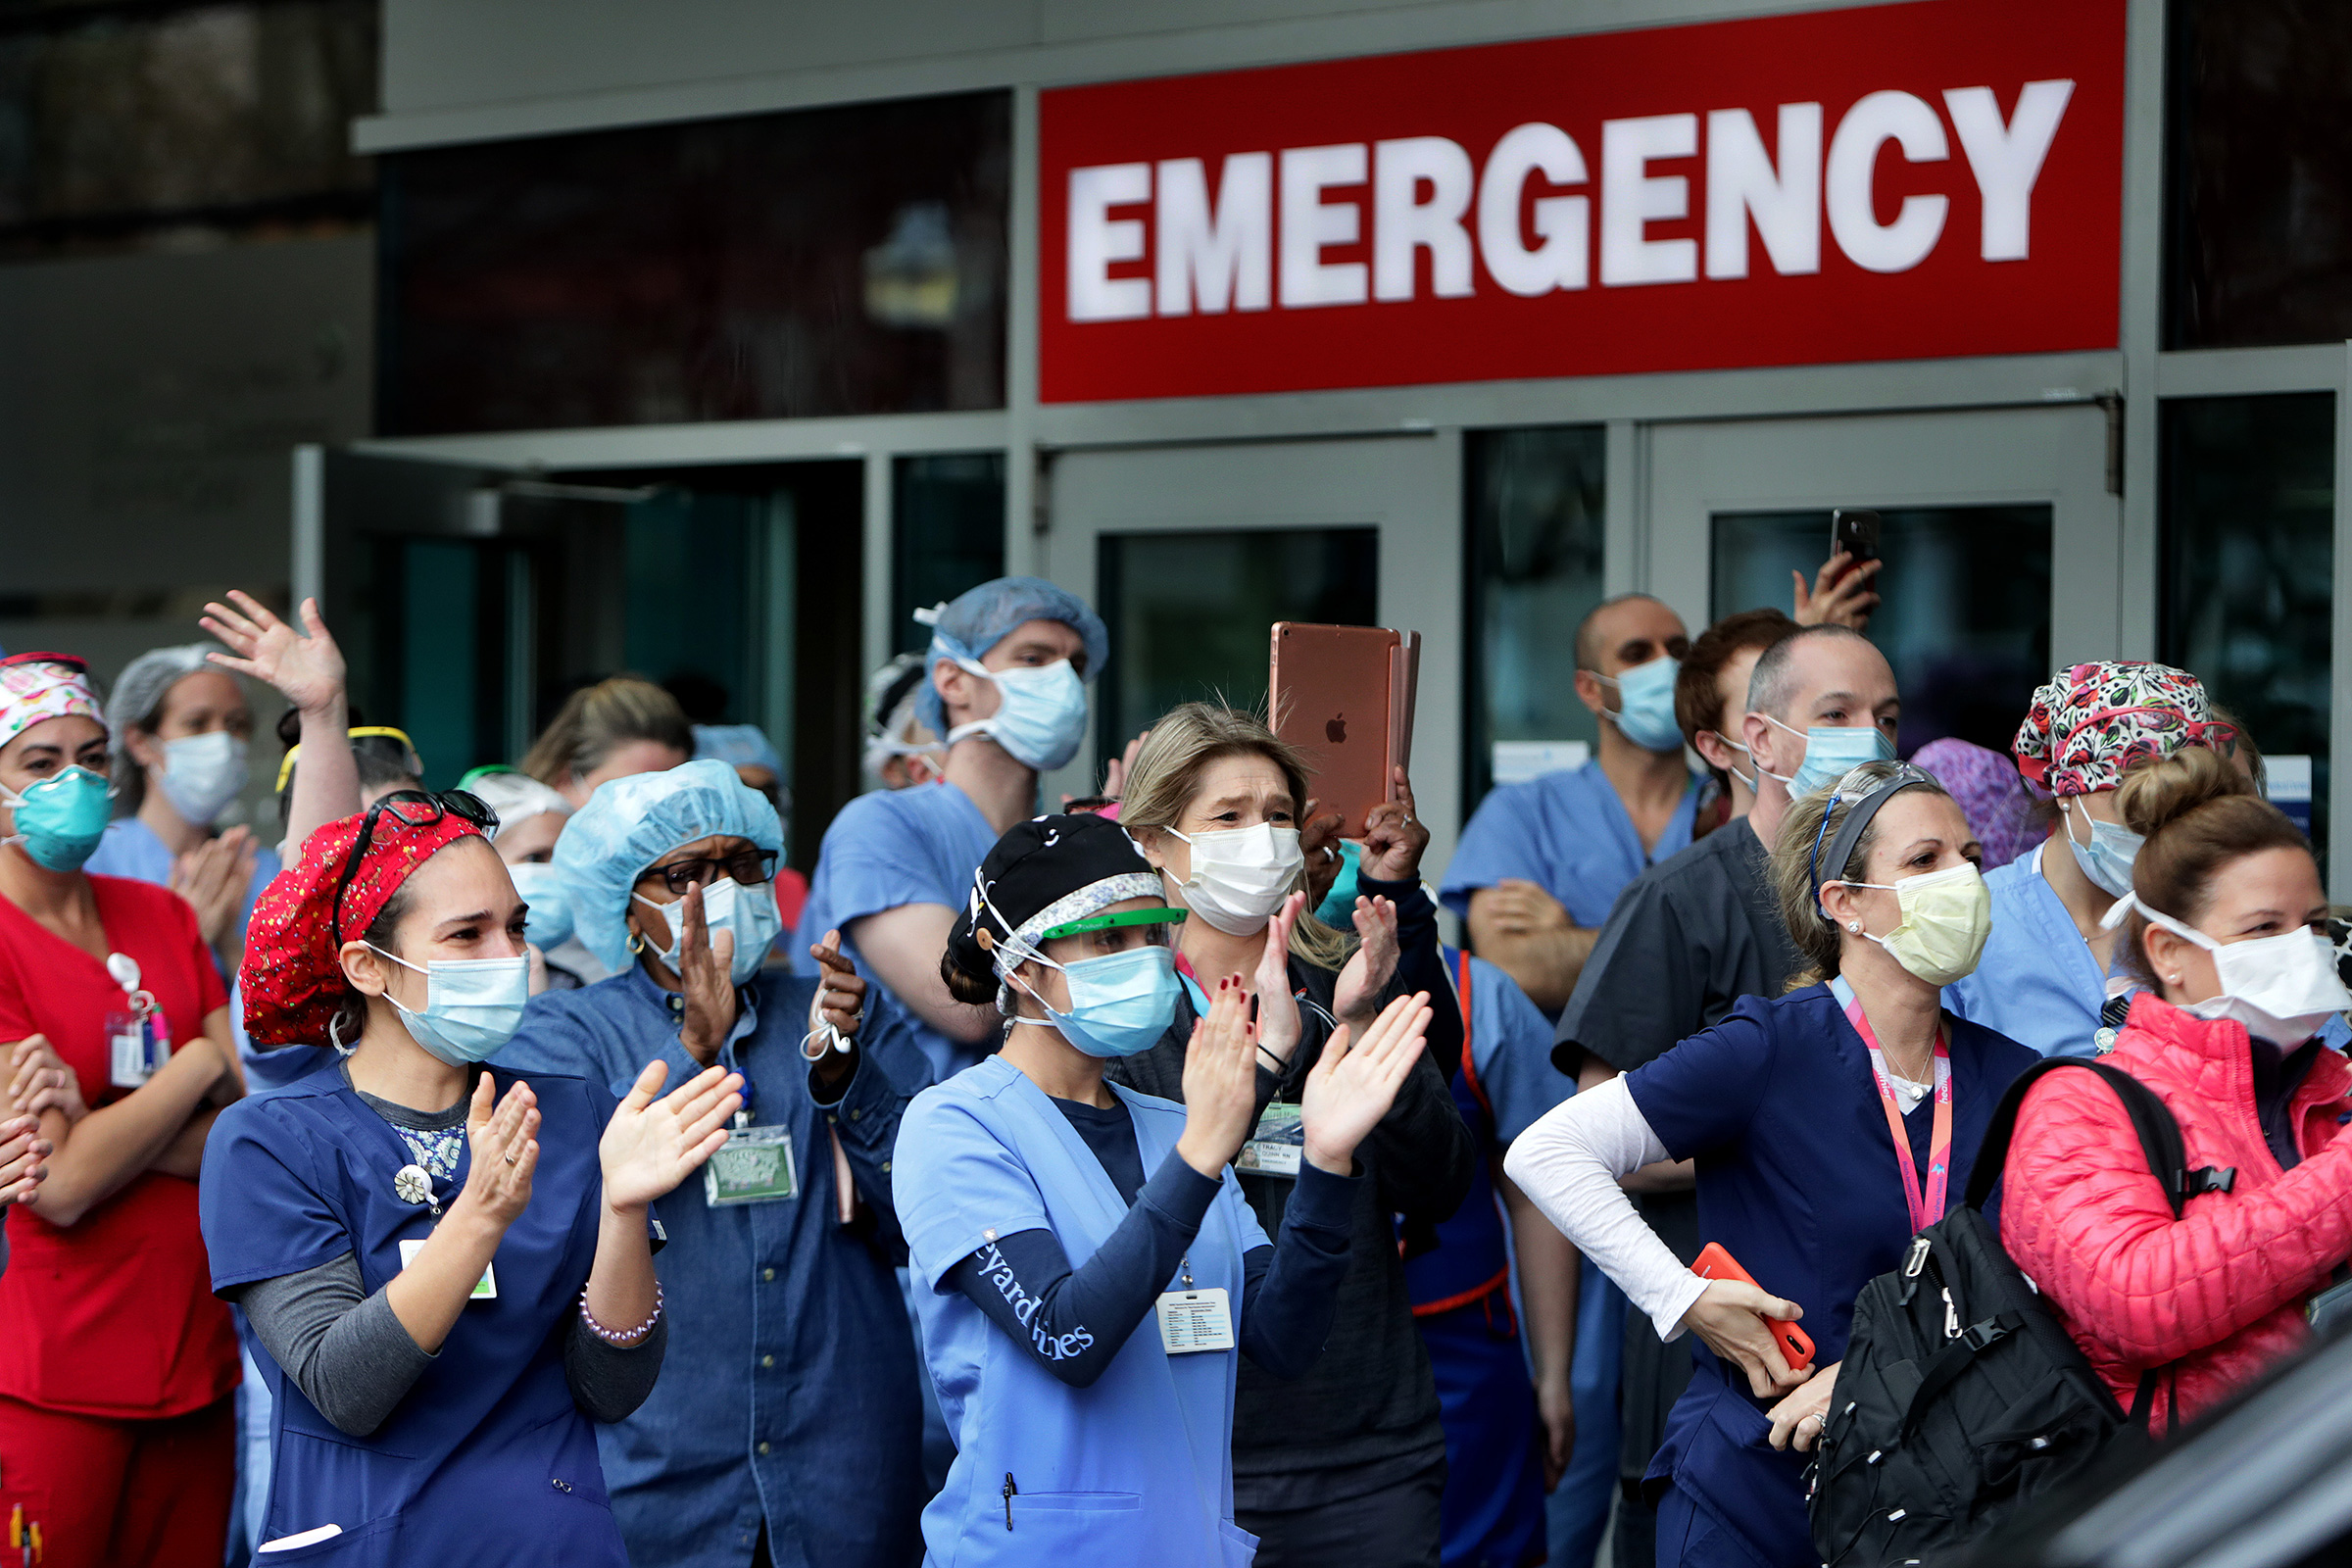 Doctors are concerned about the unprecedented decline in the emergency department during the 19-COVID pandemic